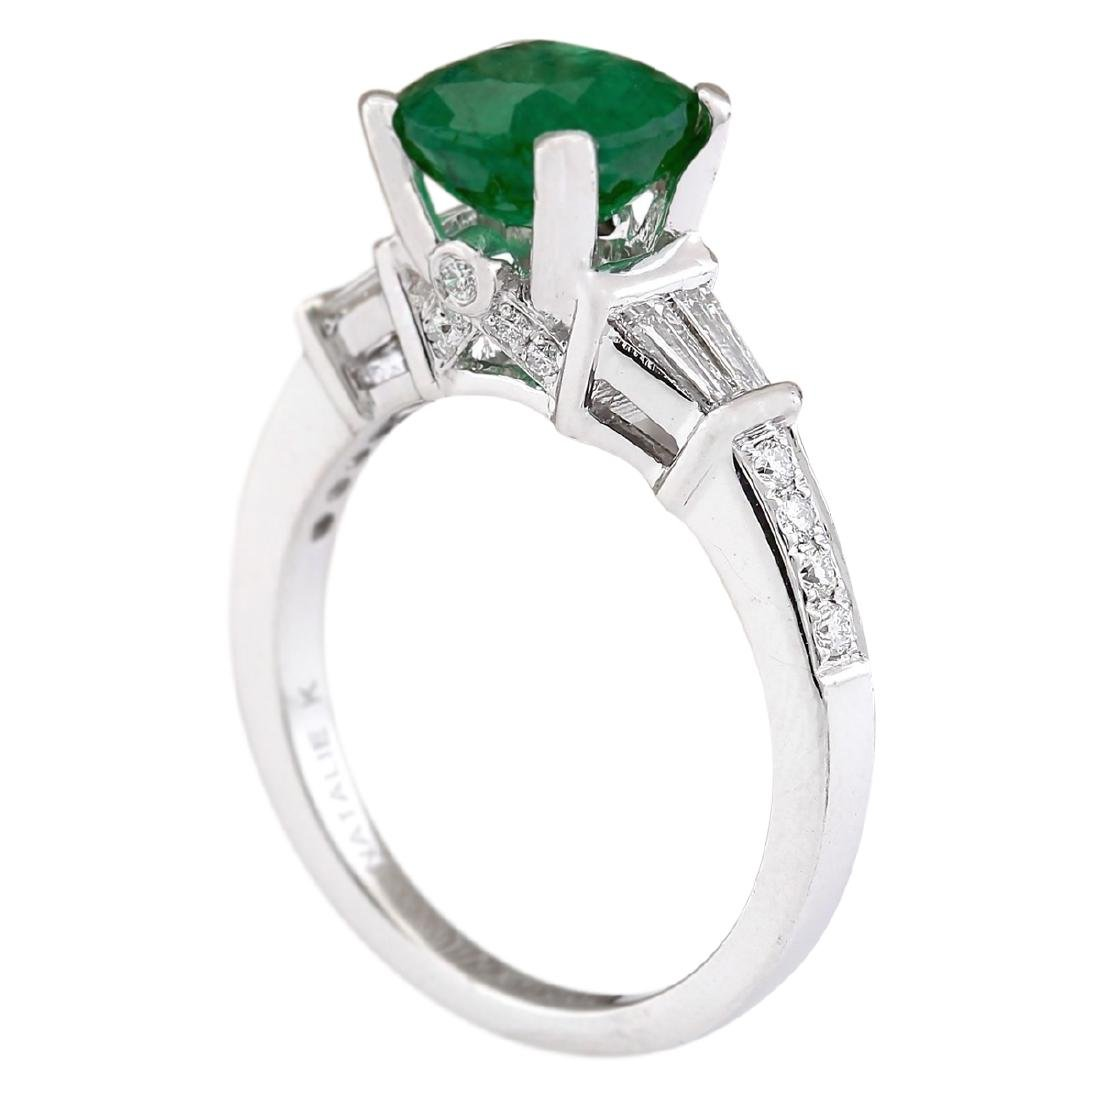 2.38 CTW Natural Emerald And Diamond Ring In 18K White - 3